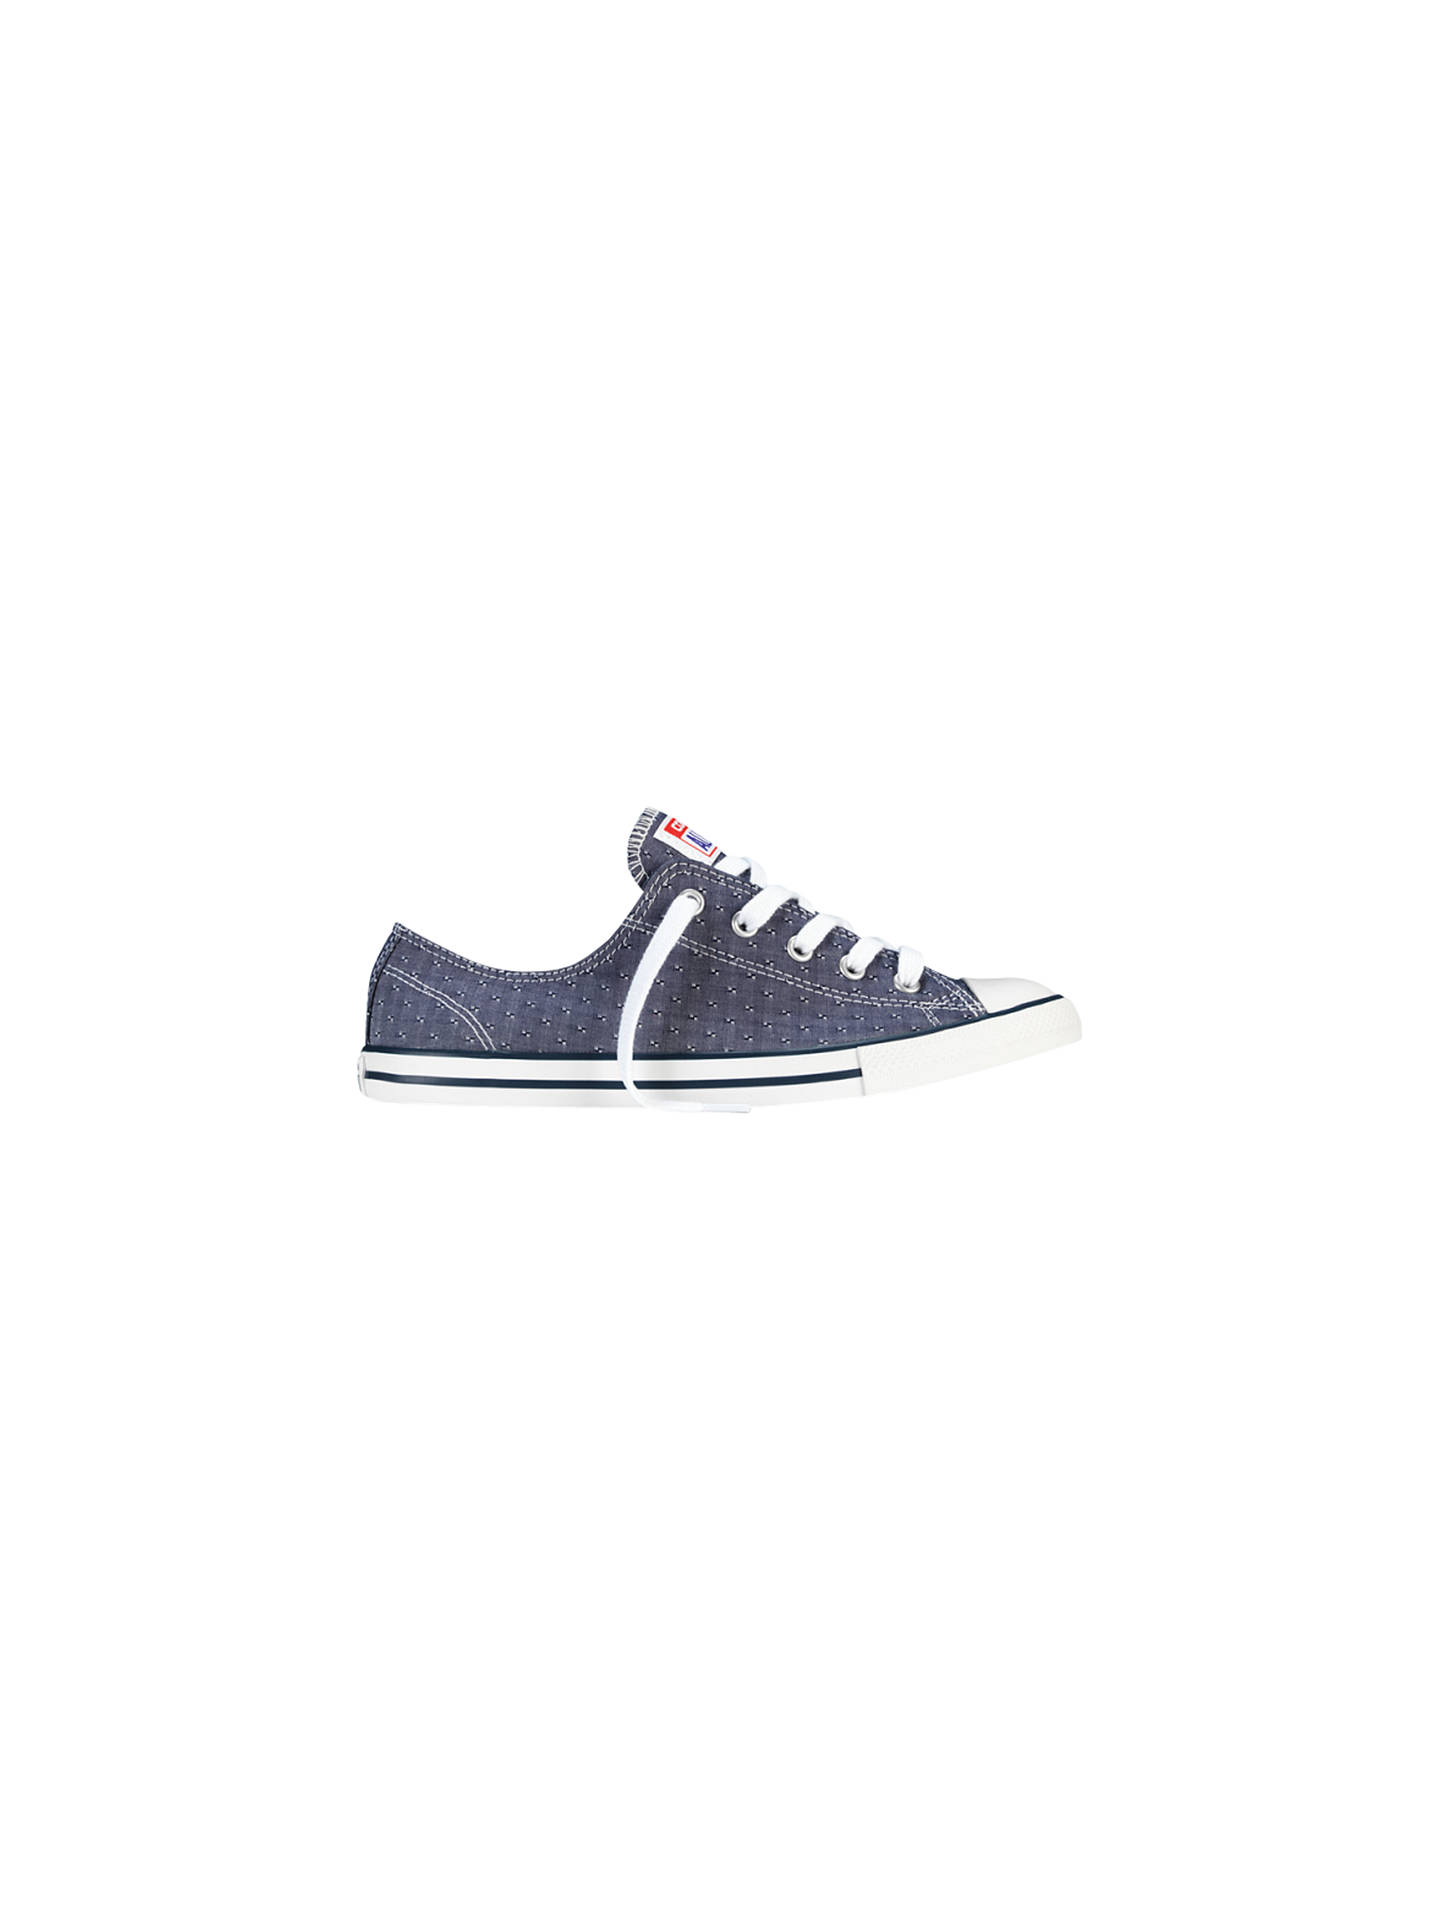 Converse Chuck Taylor All Star Dainty Chambray Trainers at John ... 558206153